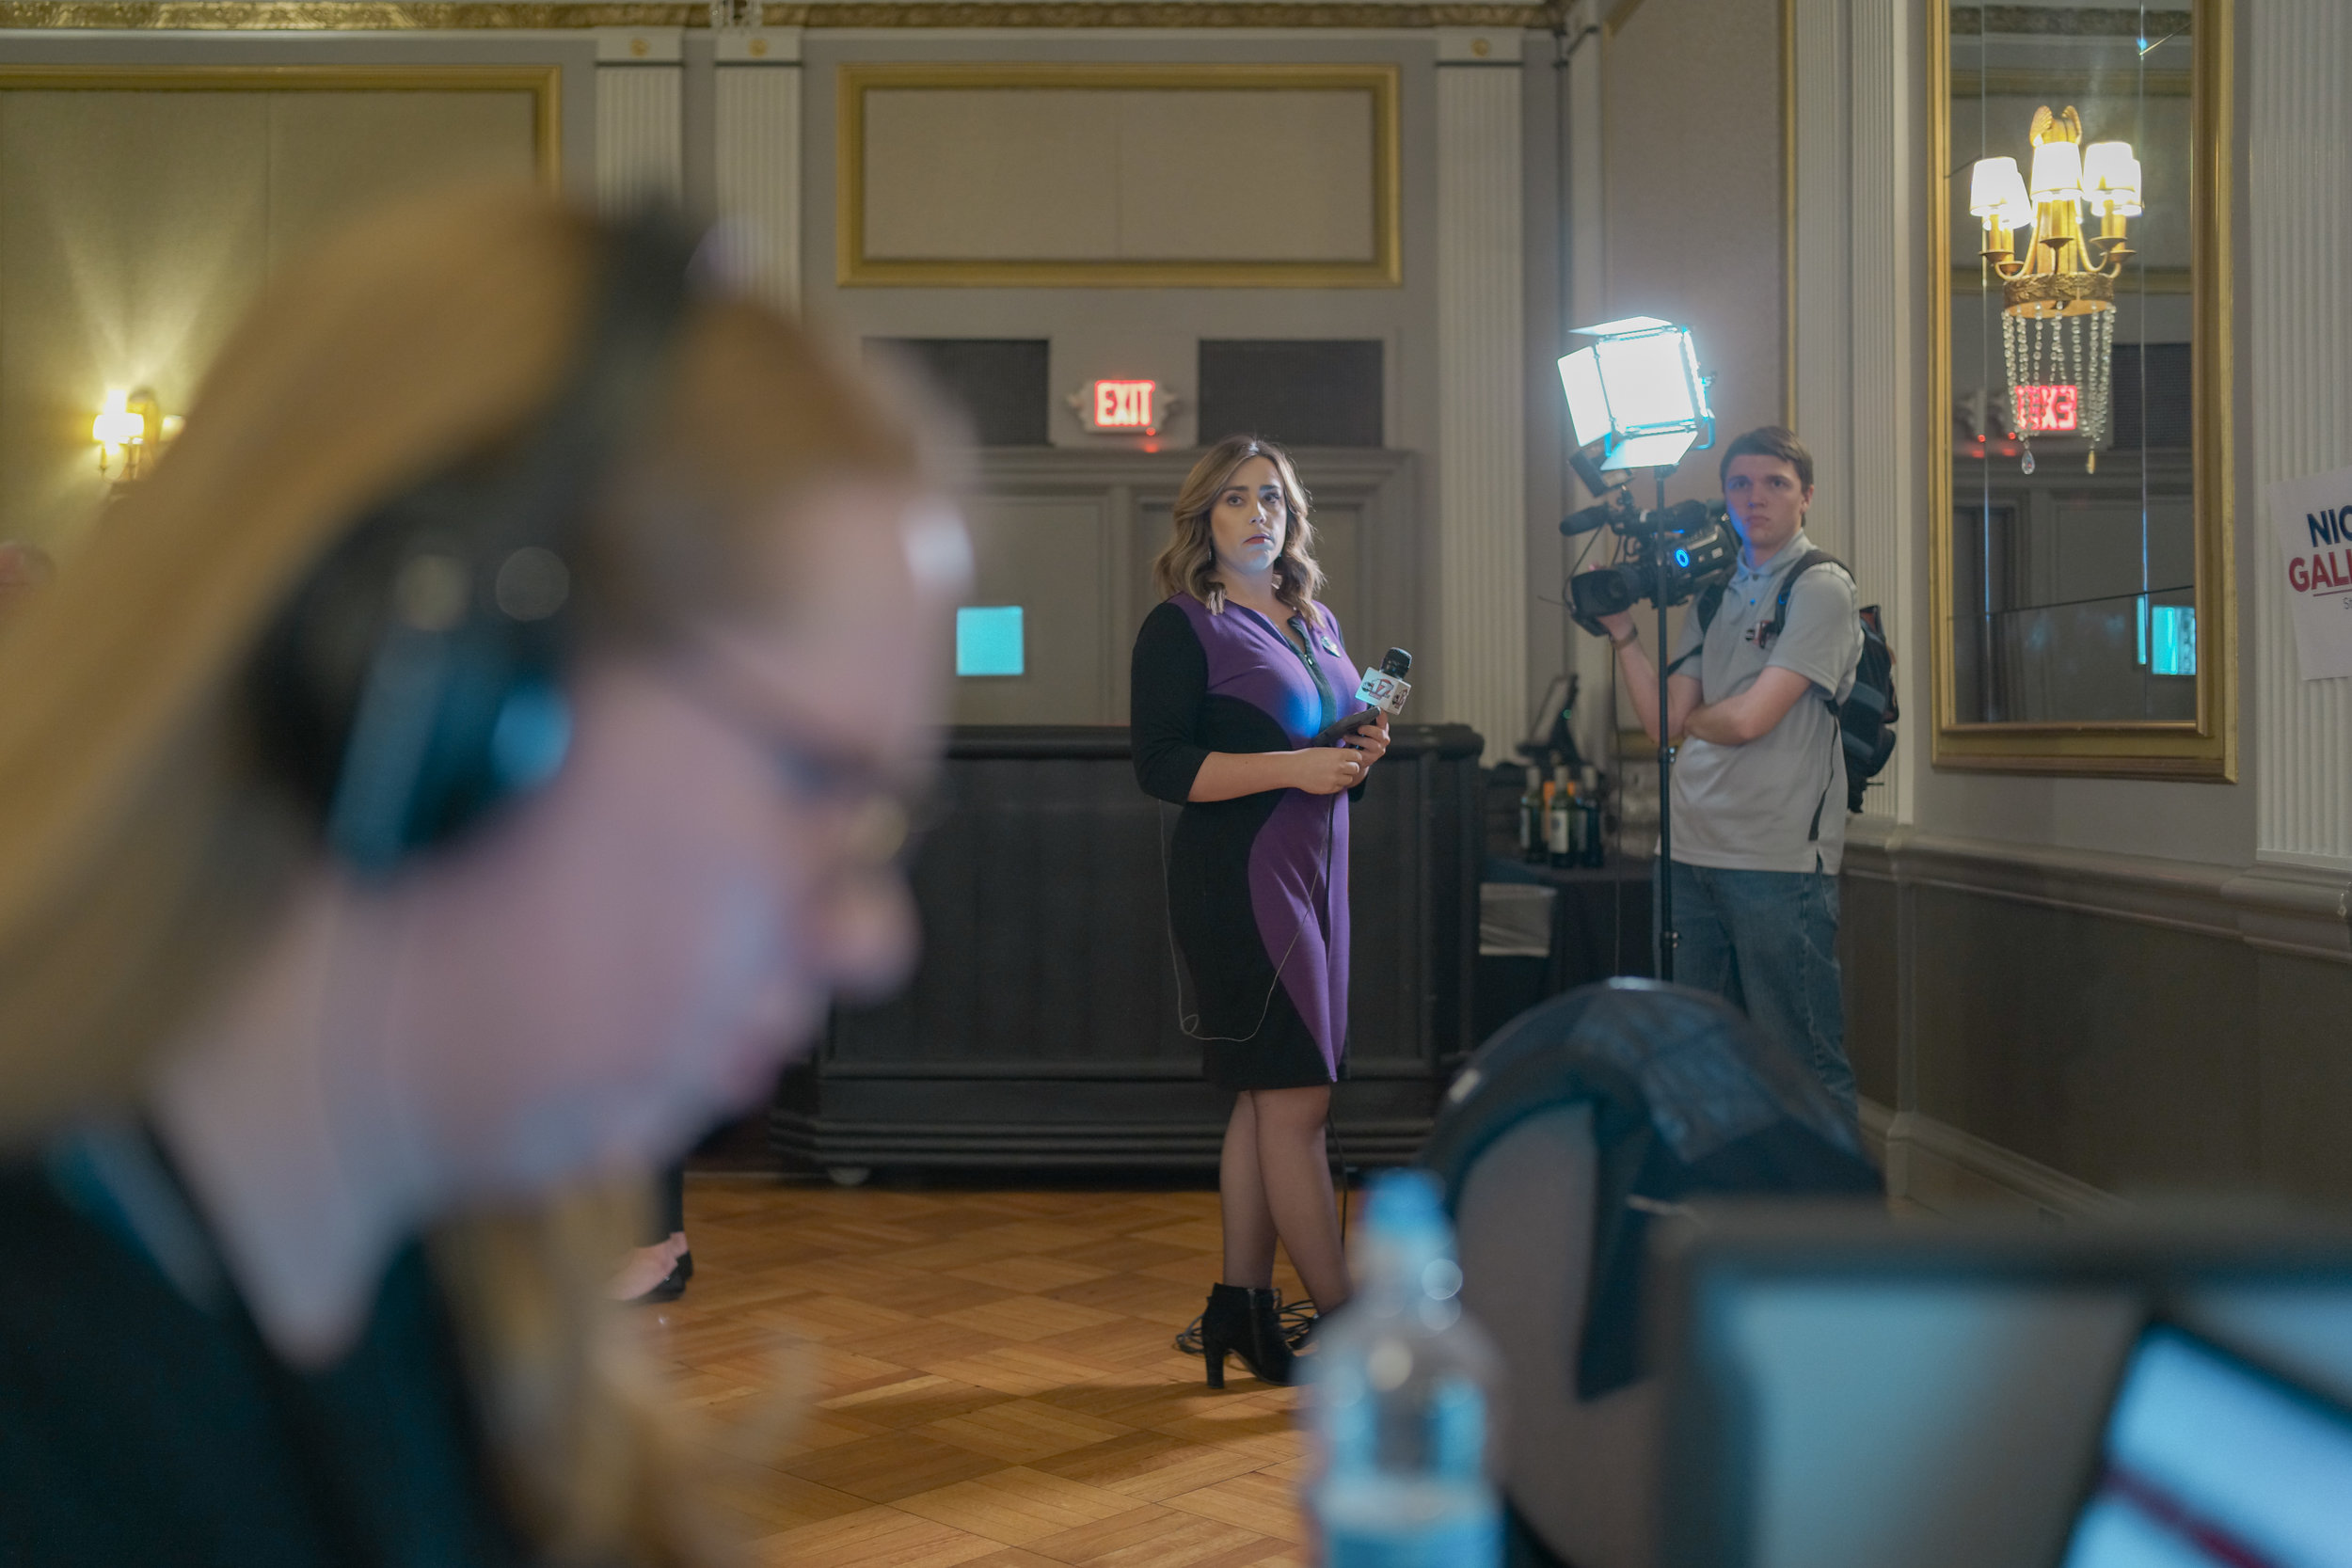 """As Aviva Okeson-Haberman, KBIA reporter, updates her story as ABC17 KMIZ's Sara Maslar-Donar goes live on the 9 o'clock news on Tuesday, Nov. 6, 2018 in The Tiger Hotel. """"I'm not the fastest writer, but it will get done,"""" Okeson-Haberman said."""